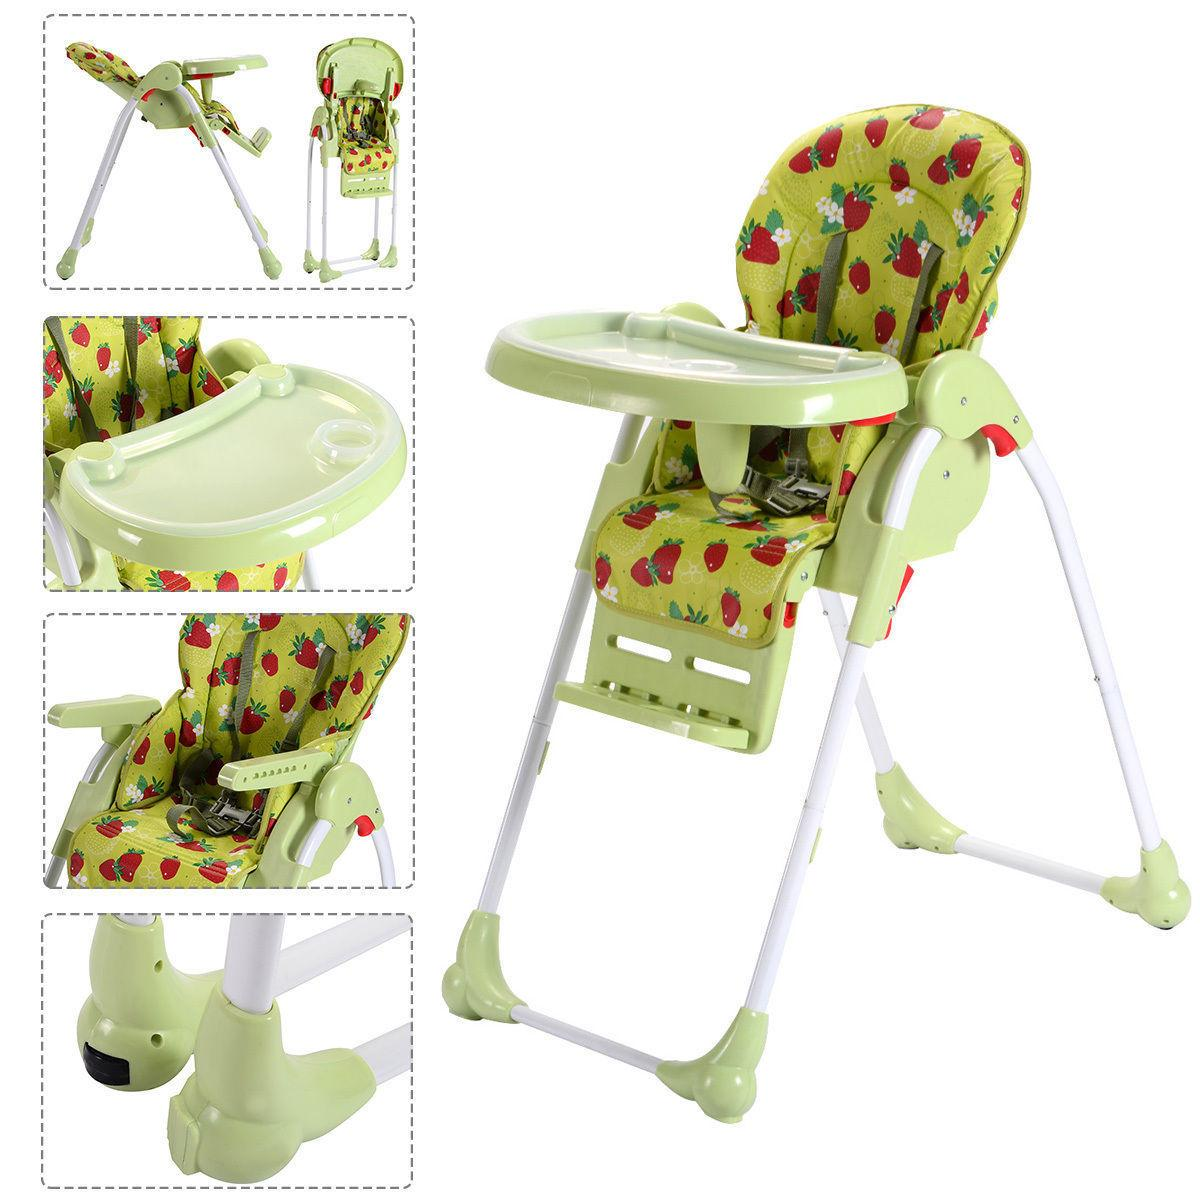 Adjustable Infant Feeding Booster Seat